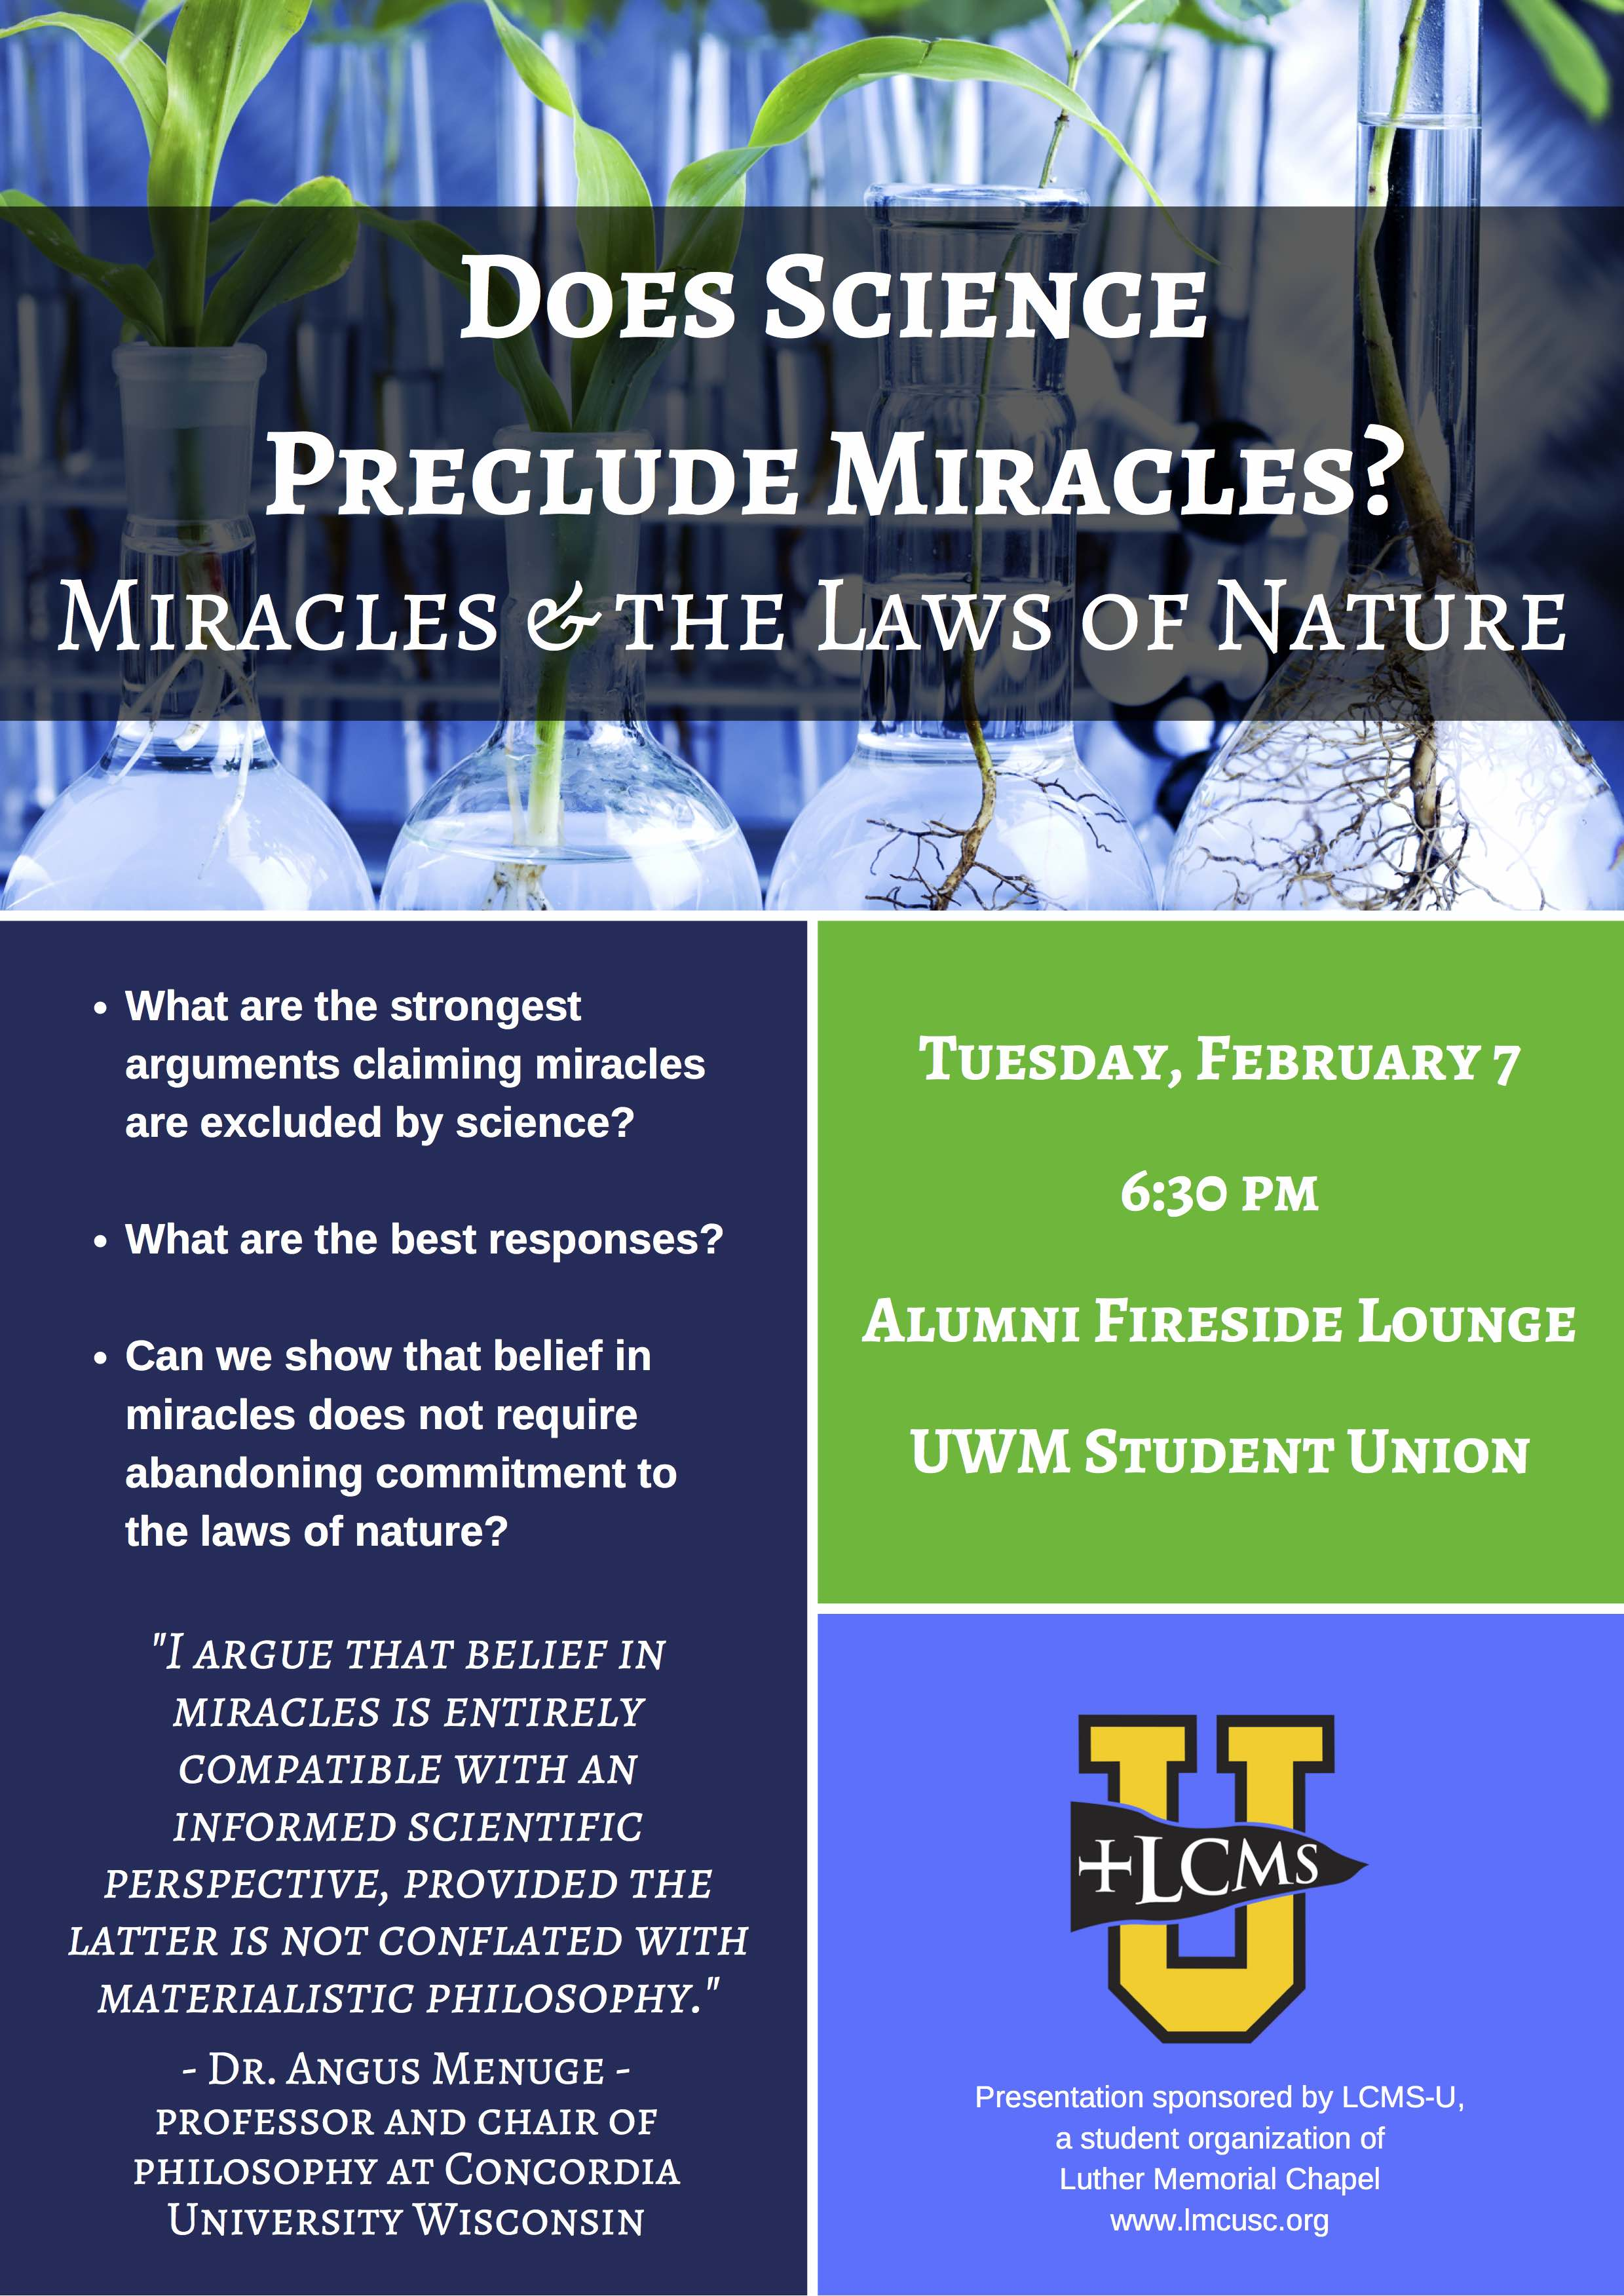 Does Science Preclude Miracles